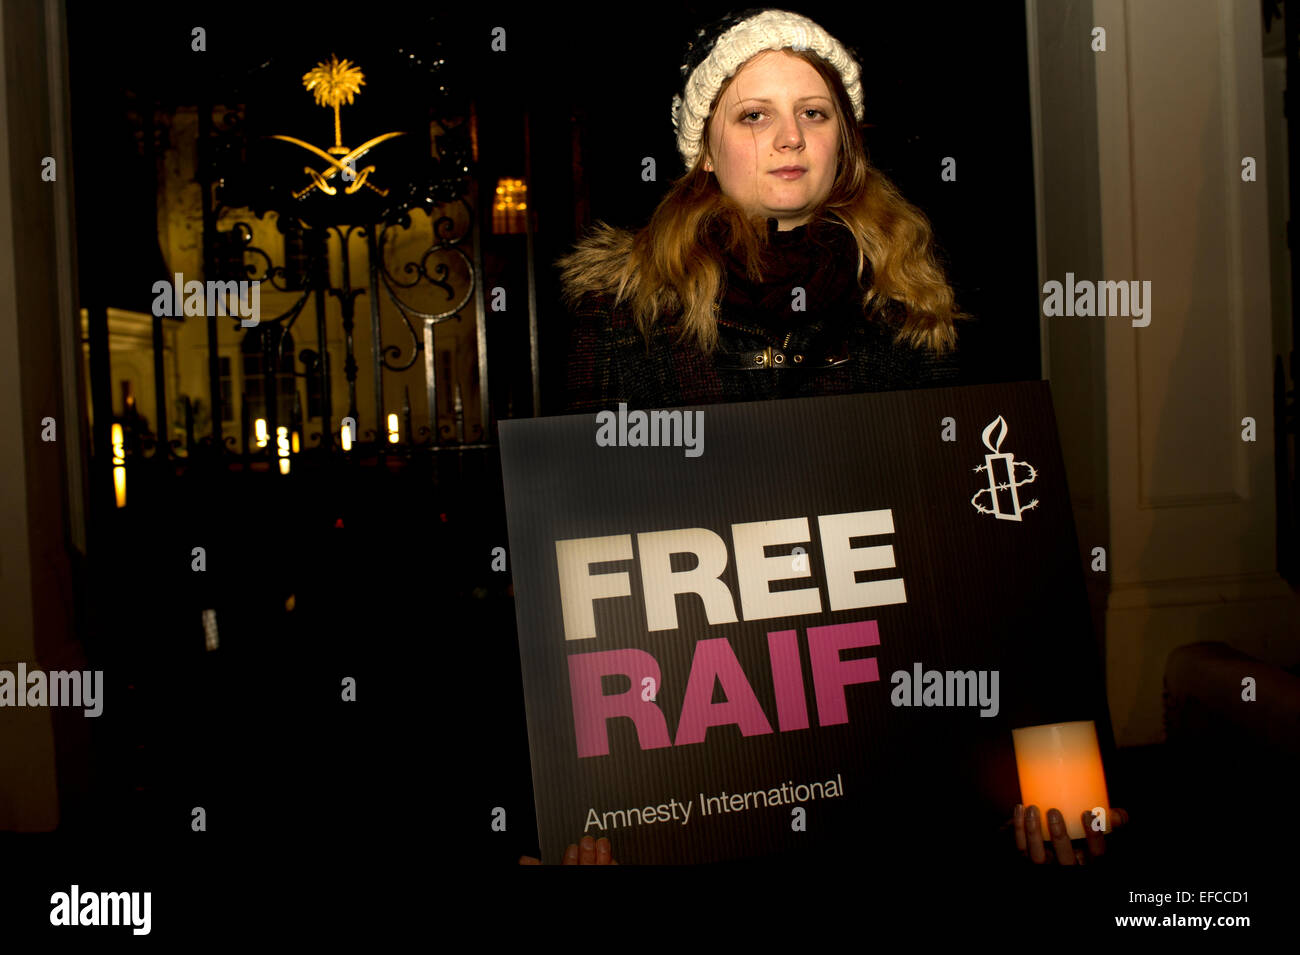 Protest outside the Embassy of Saudi Arabia, in London, organized by Amnesty International, against the flogging - Stock Image